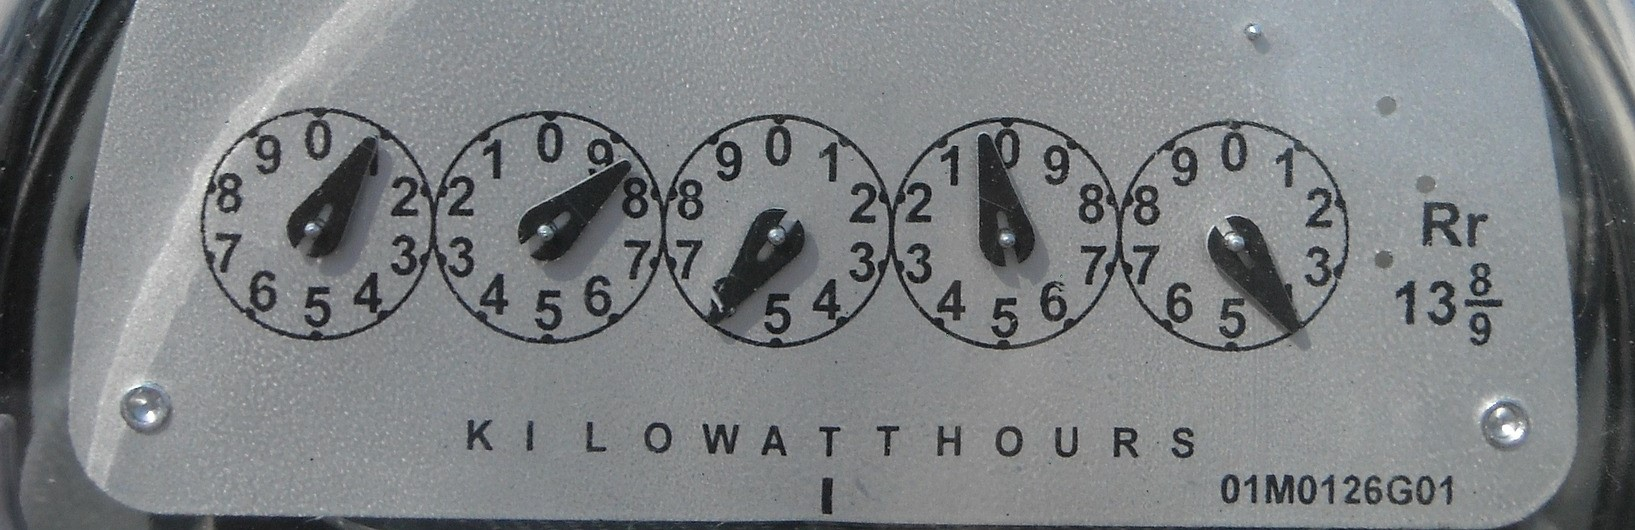 How to Read Your Electric Meter | Electricity Company in Texas